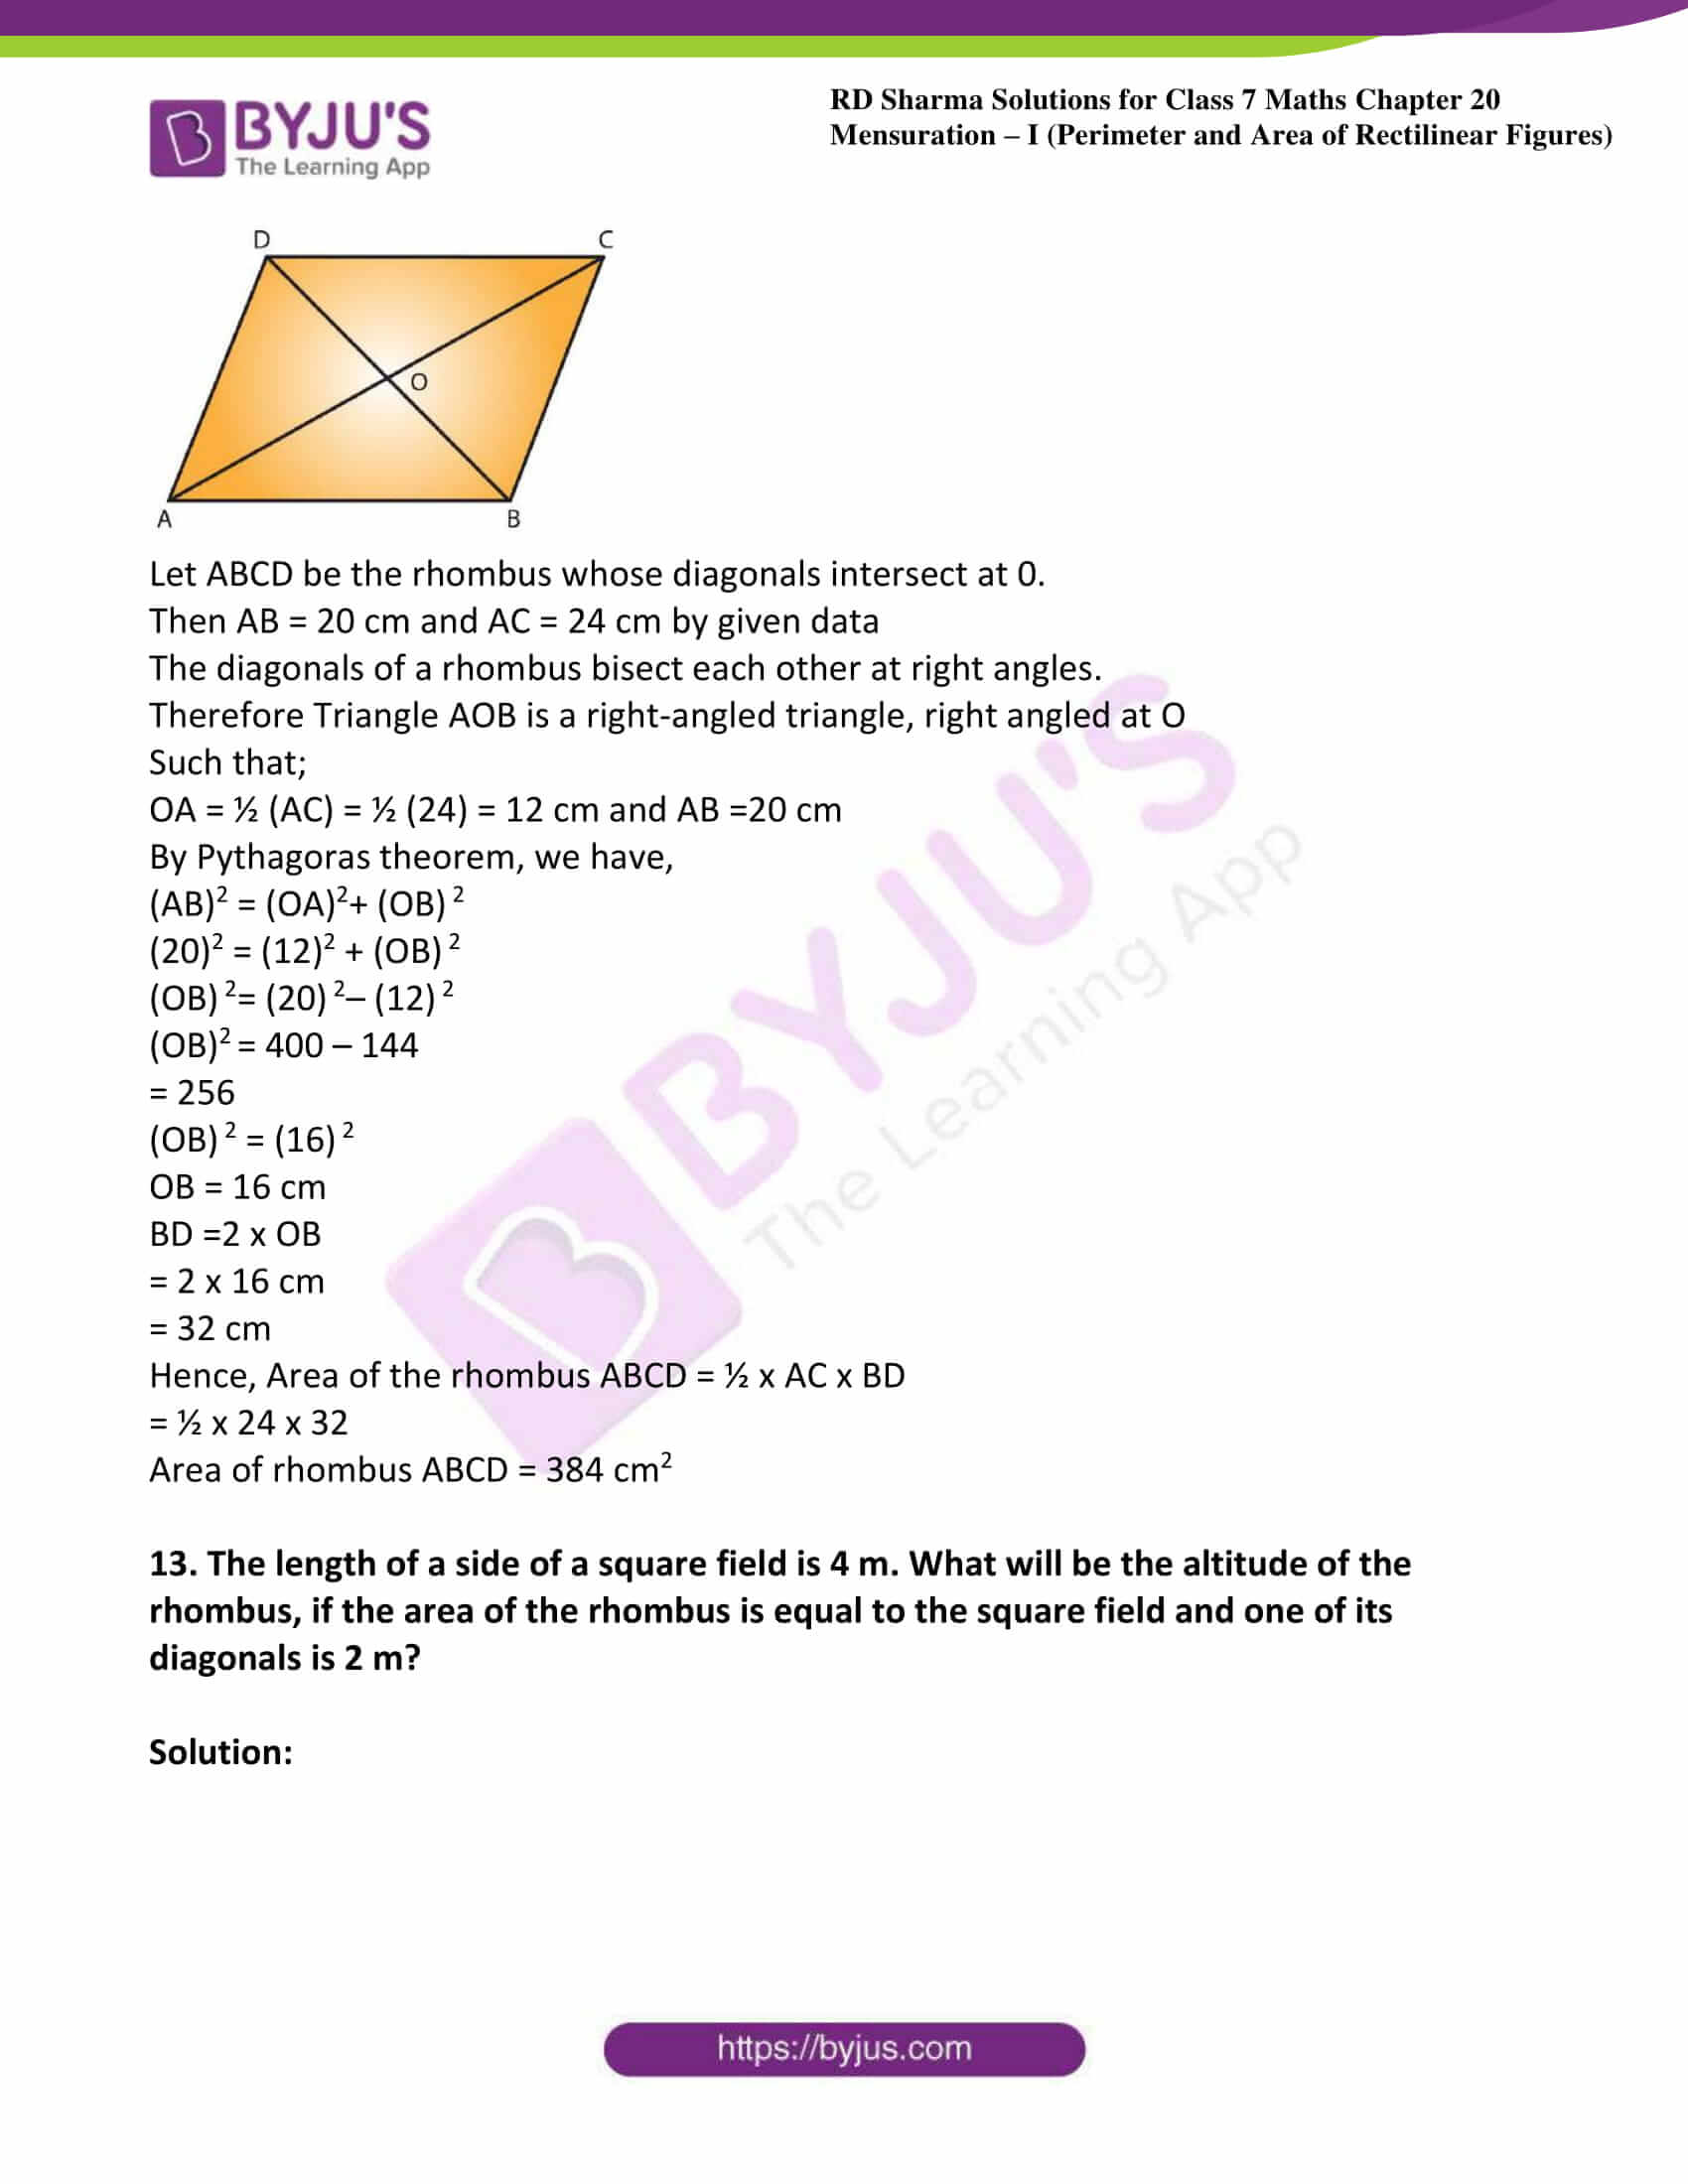 rd sharma class 7 maths solution ch 20 ex 3